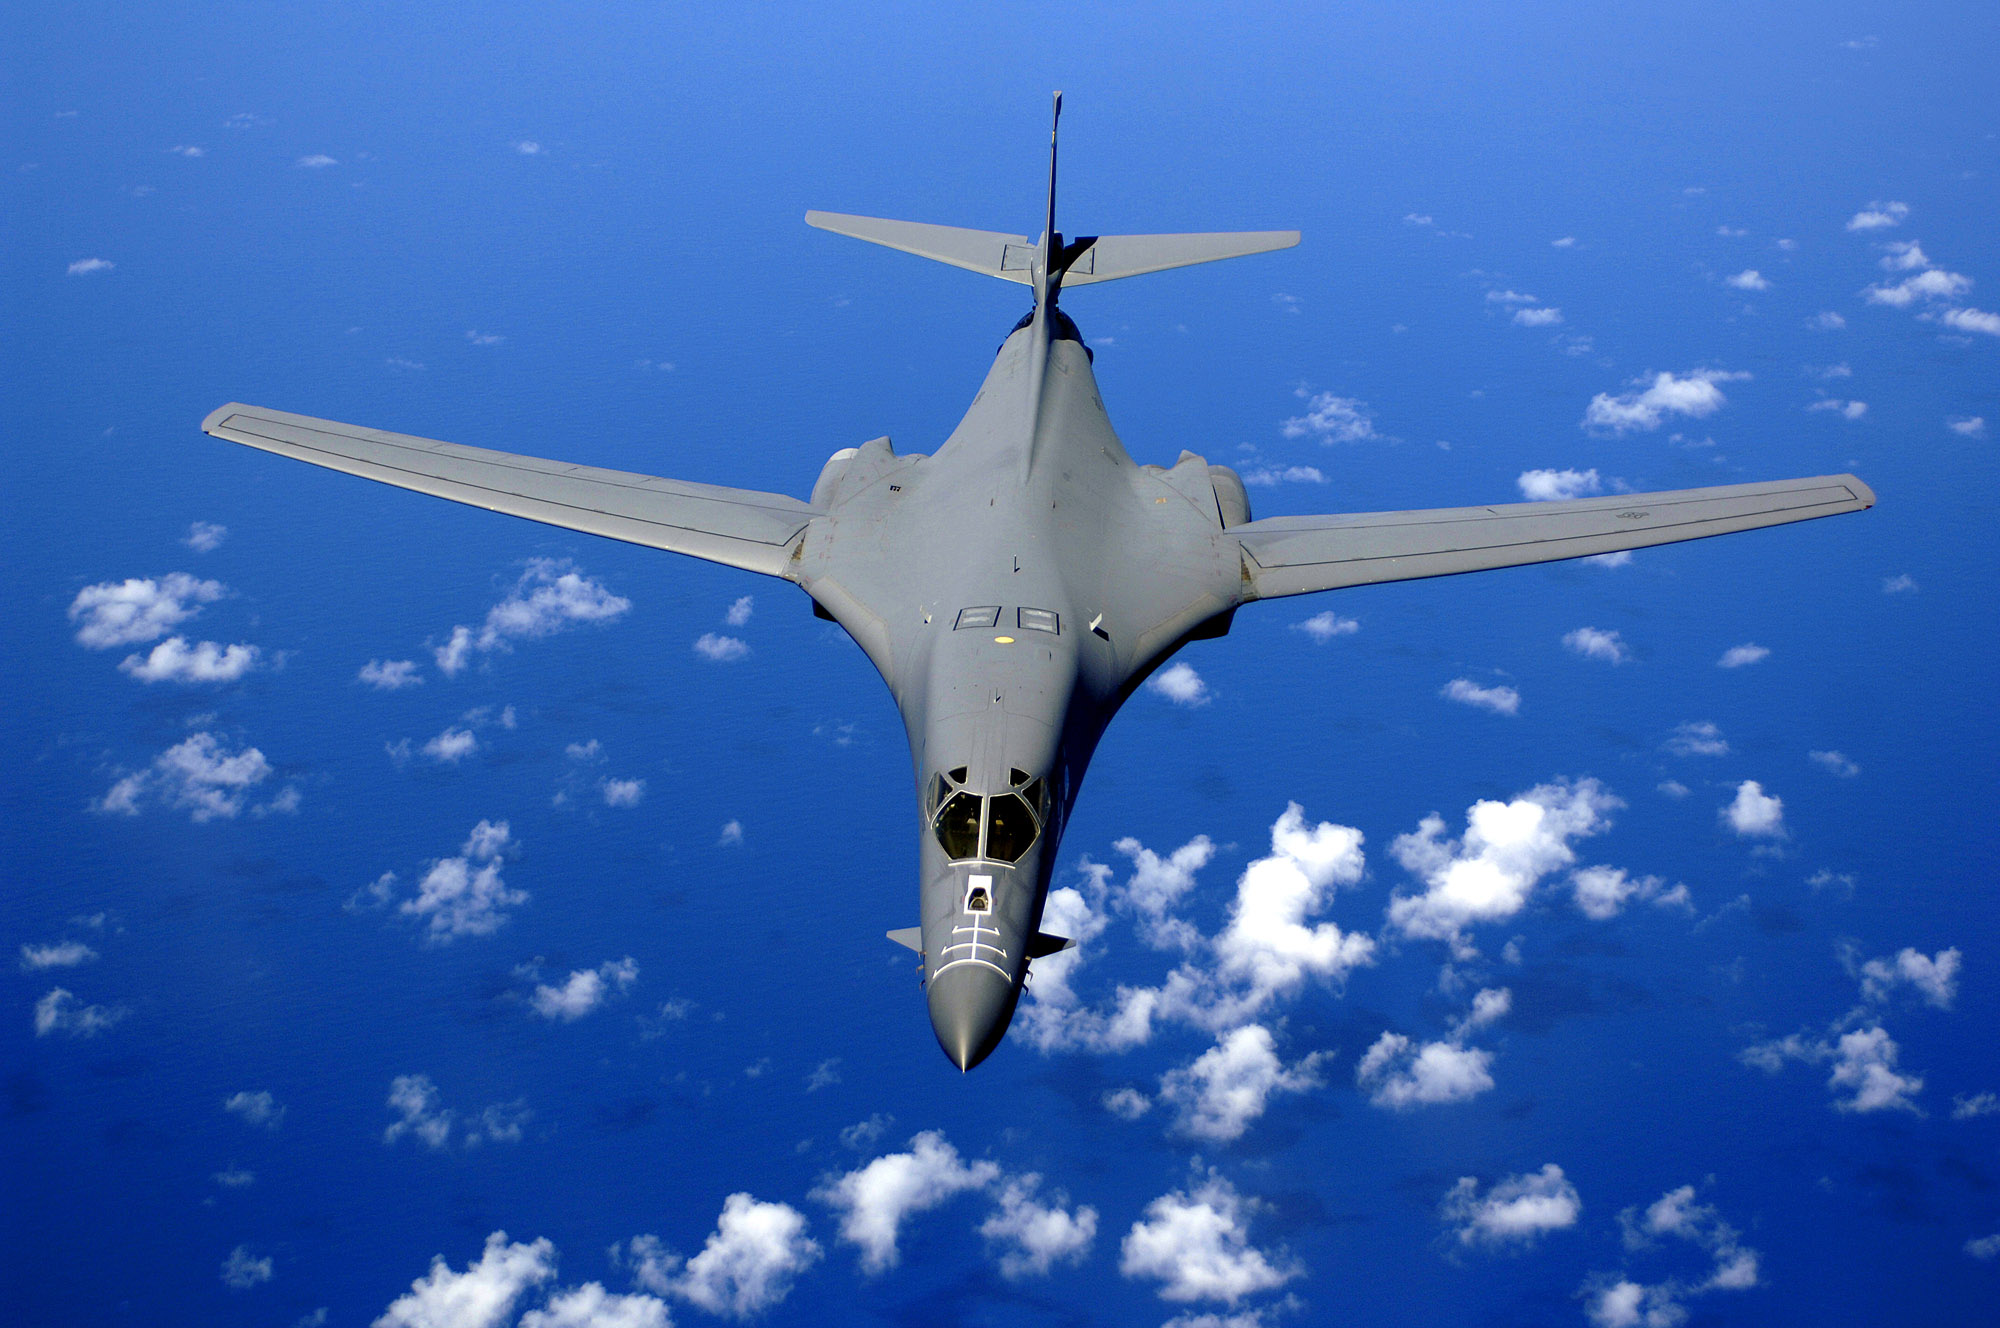 Datei:B-1B over the pacific ocean.jpg